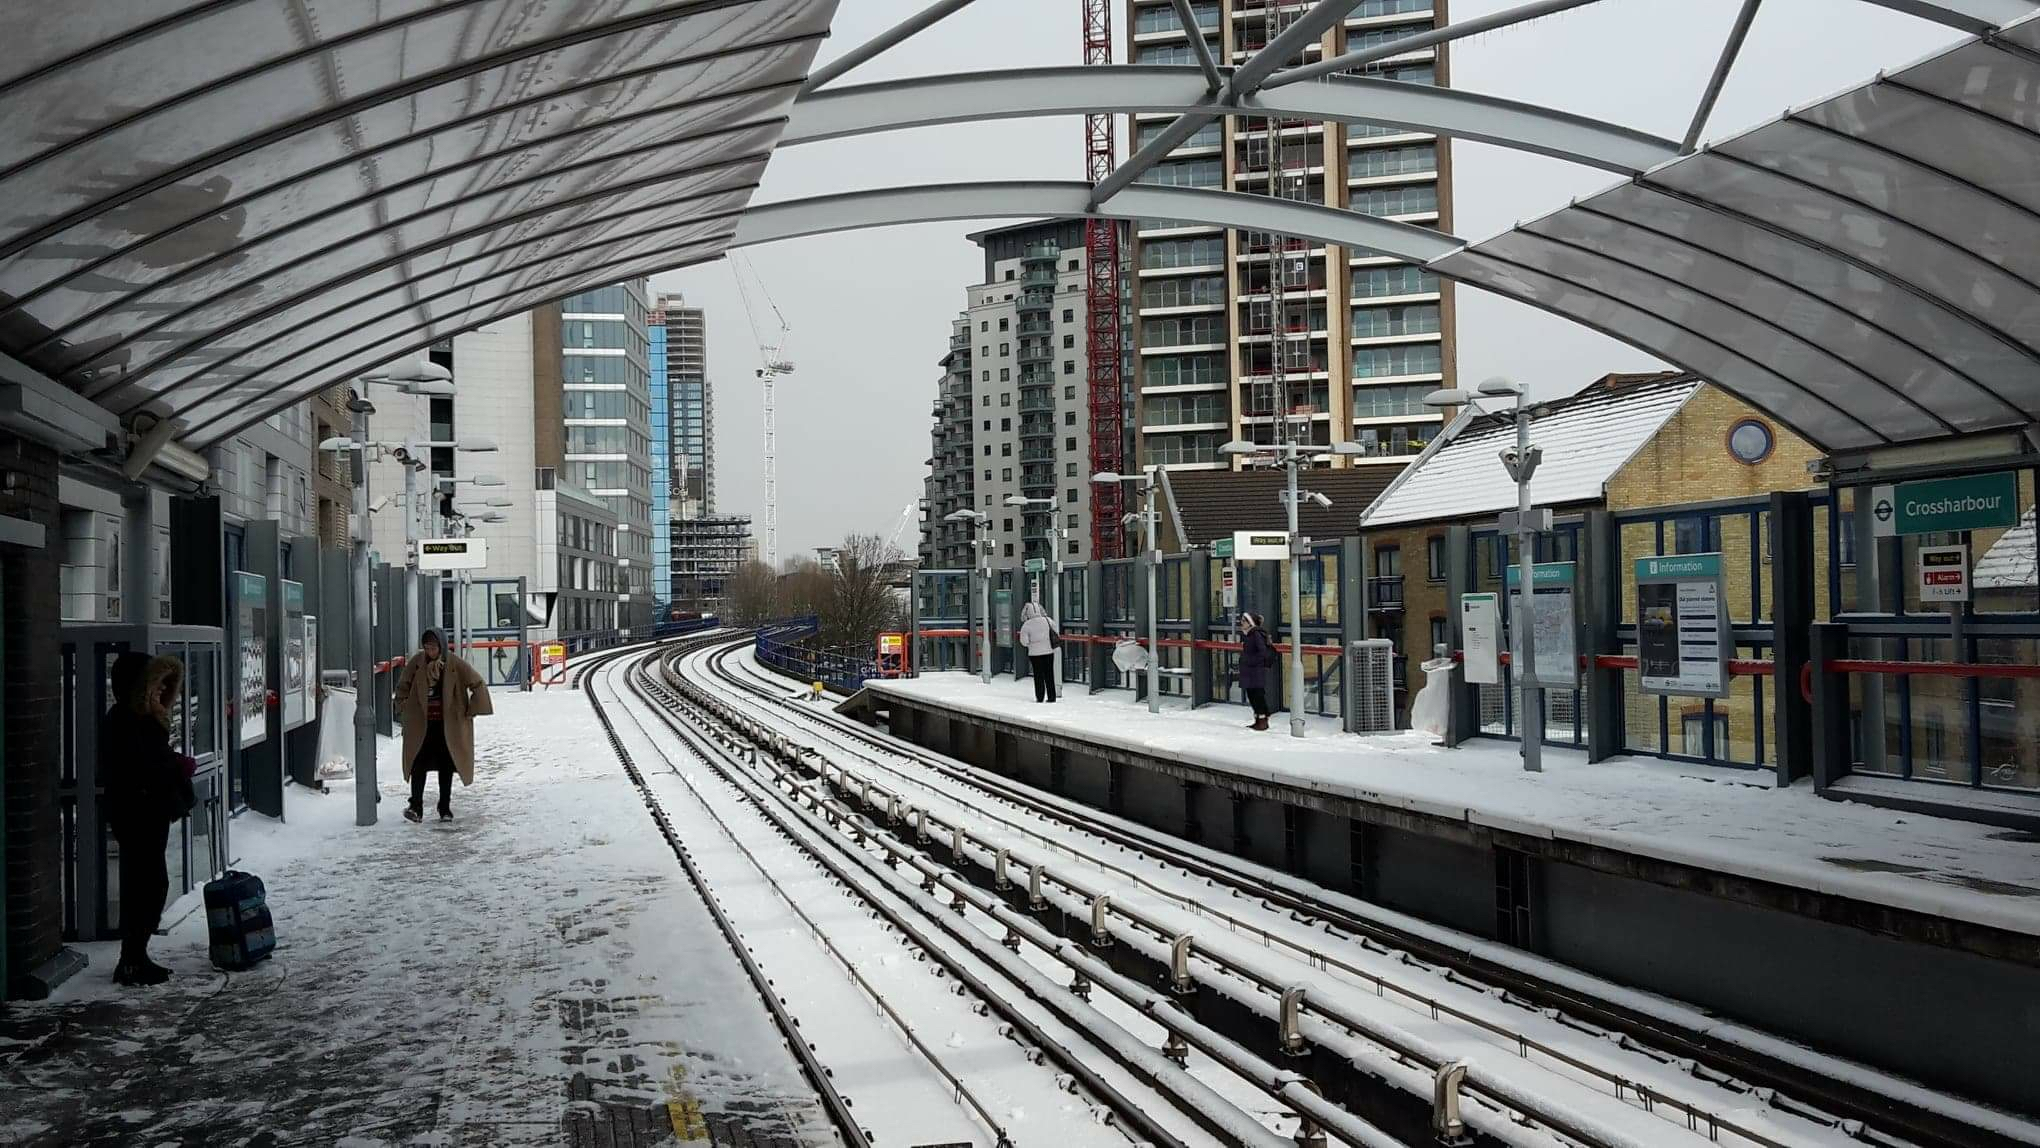 Winter in London's Crossharbour DLR station Photo by Belinda Inglis